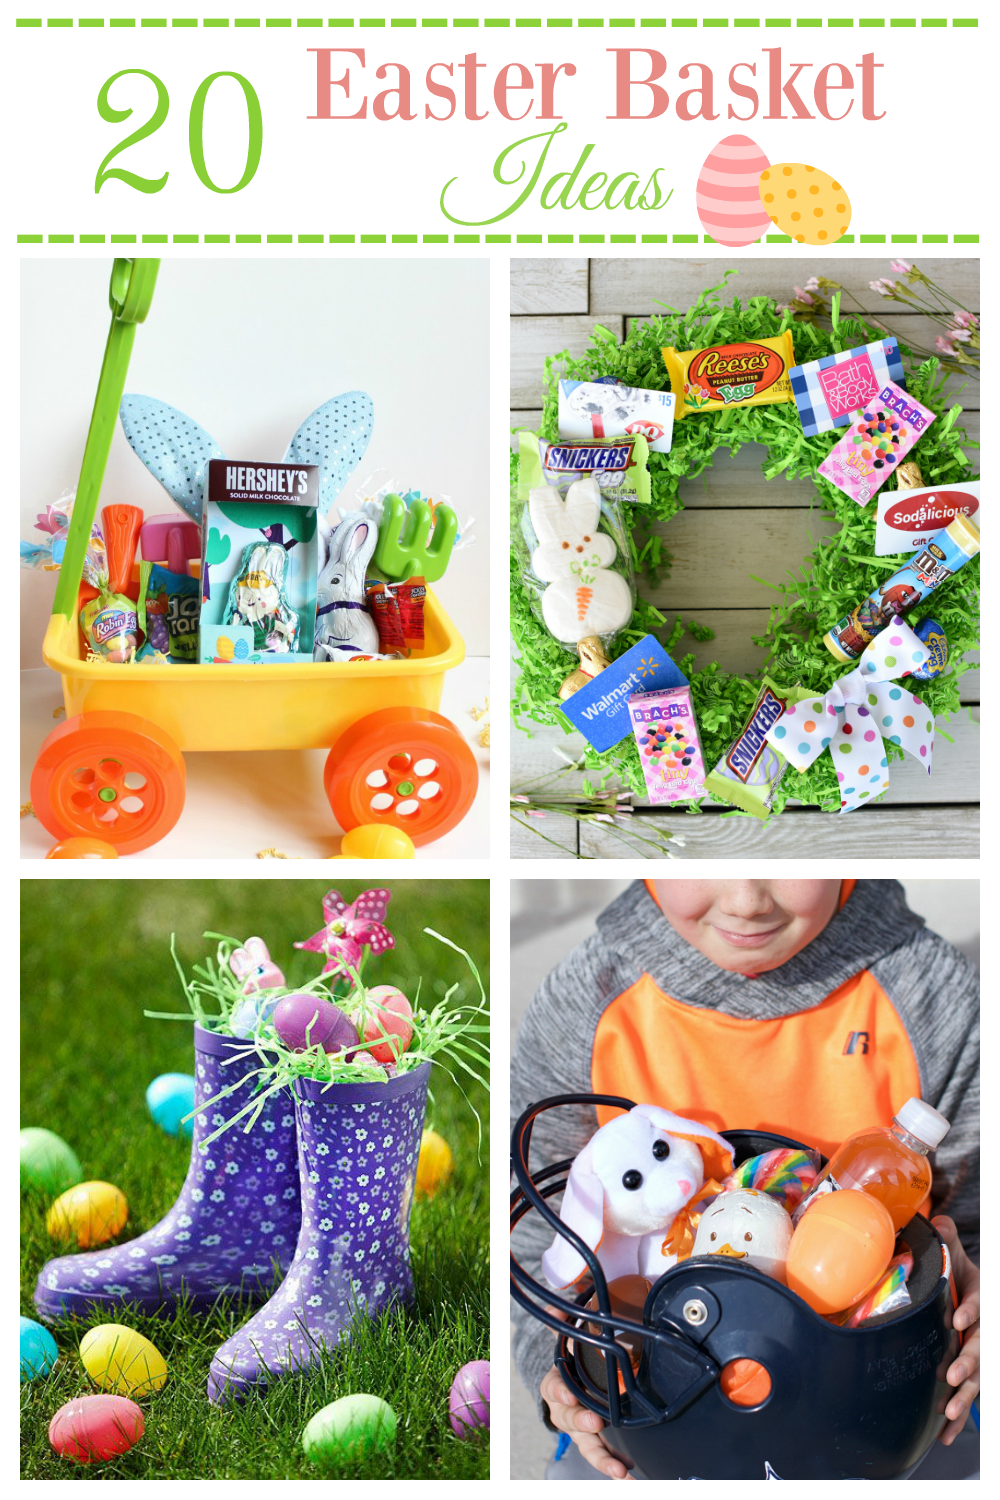 20 Fun Easter Basket Ideas! Get your wheels turning with these fun and creative Easter Basket Ideas. #easterbasket #Easterfun #funbasketideas #Funeasterbaskets